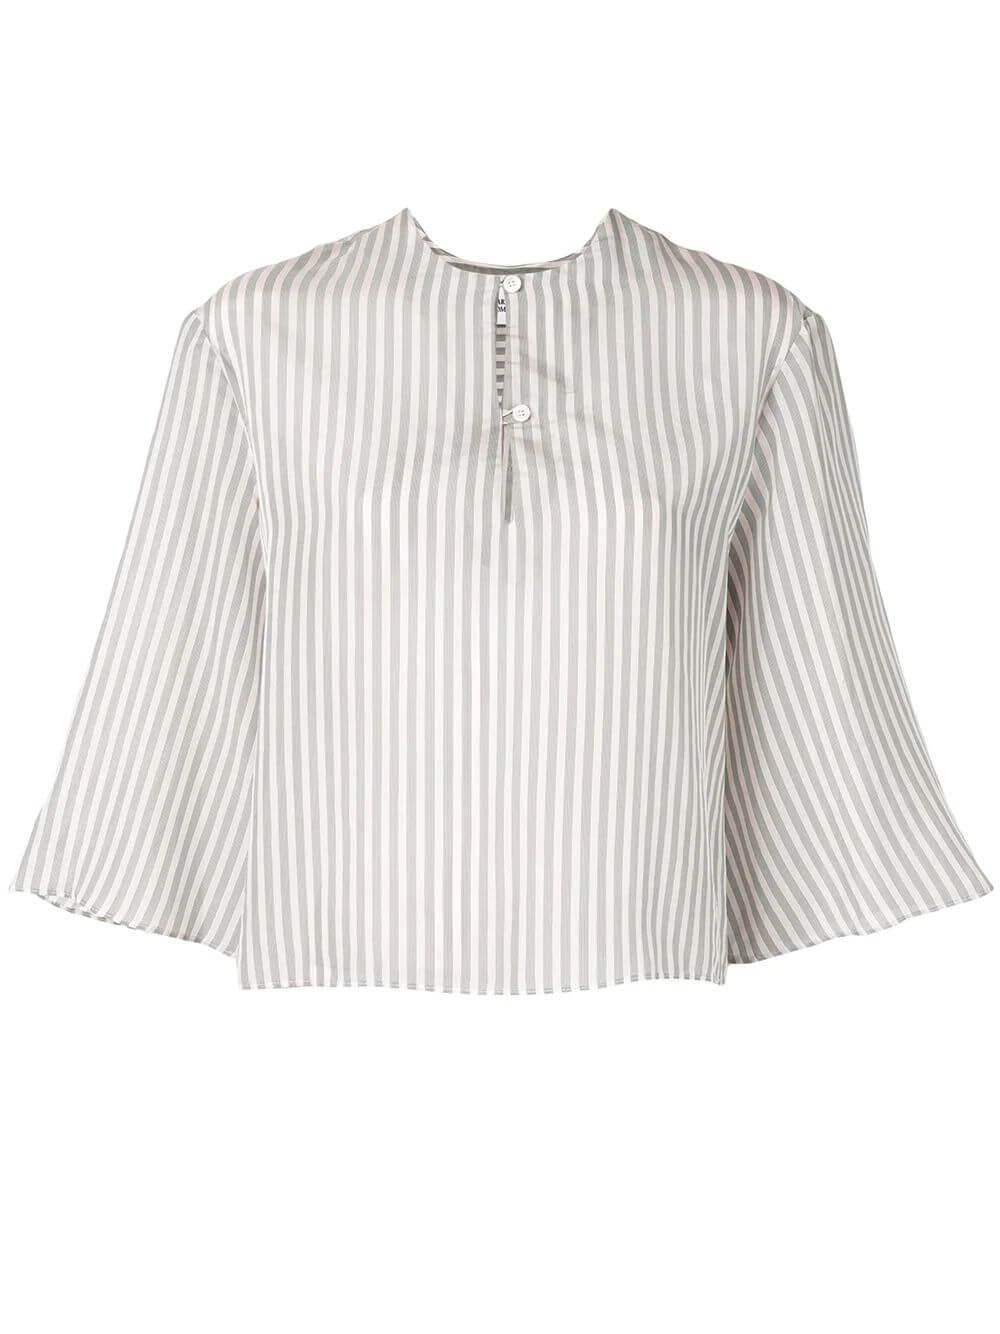 Bia Bell Sleeve Silky Stripe Blouse Item # 1046 01 148 8083